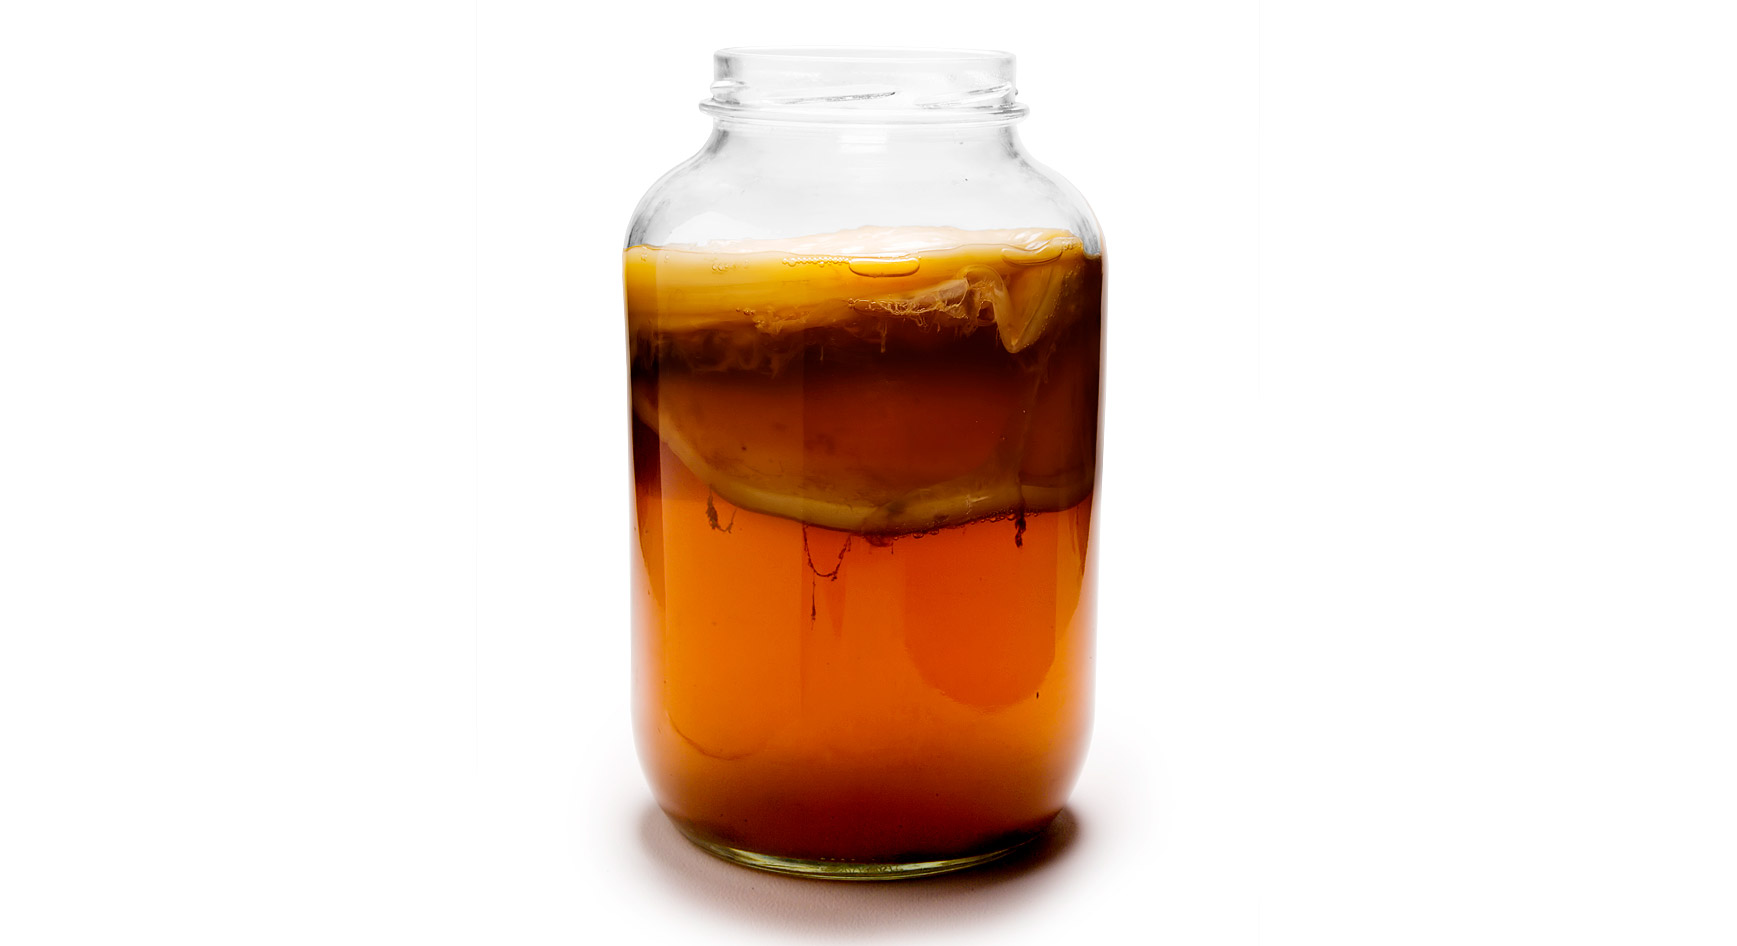 fermented kombucha in a jar